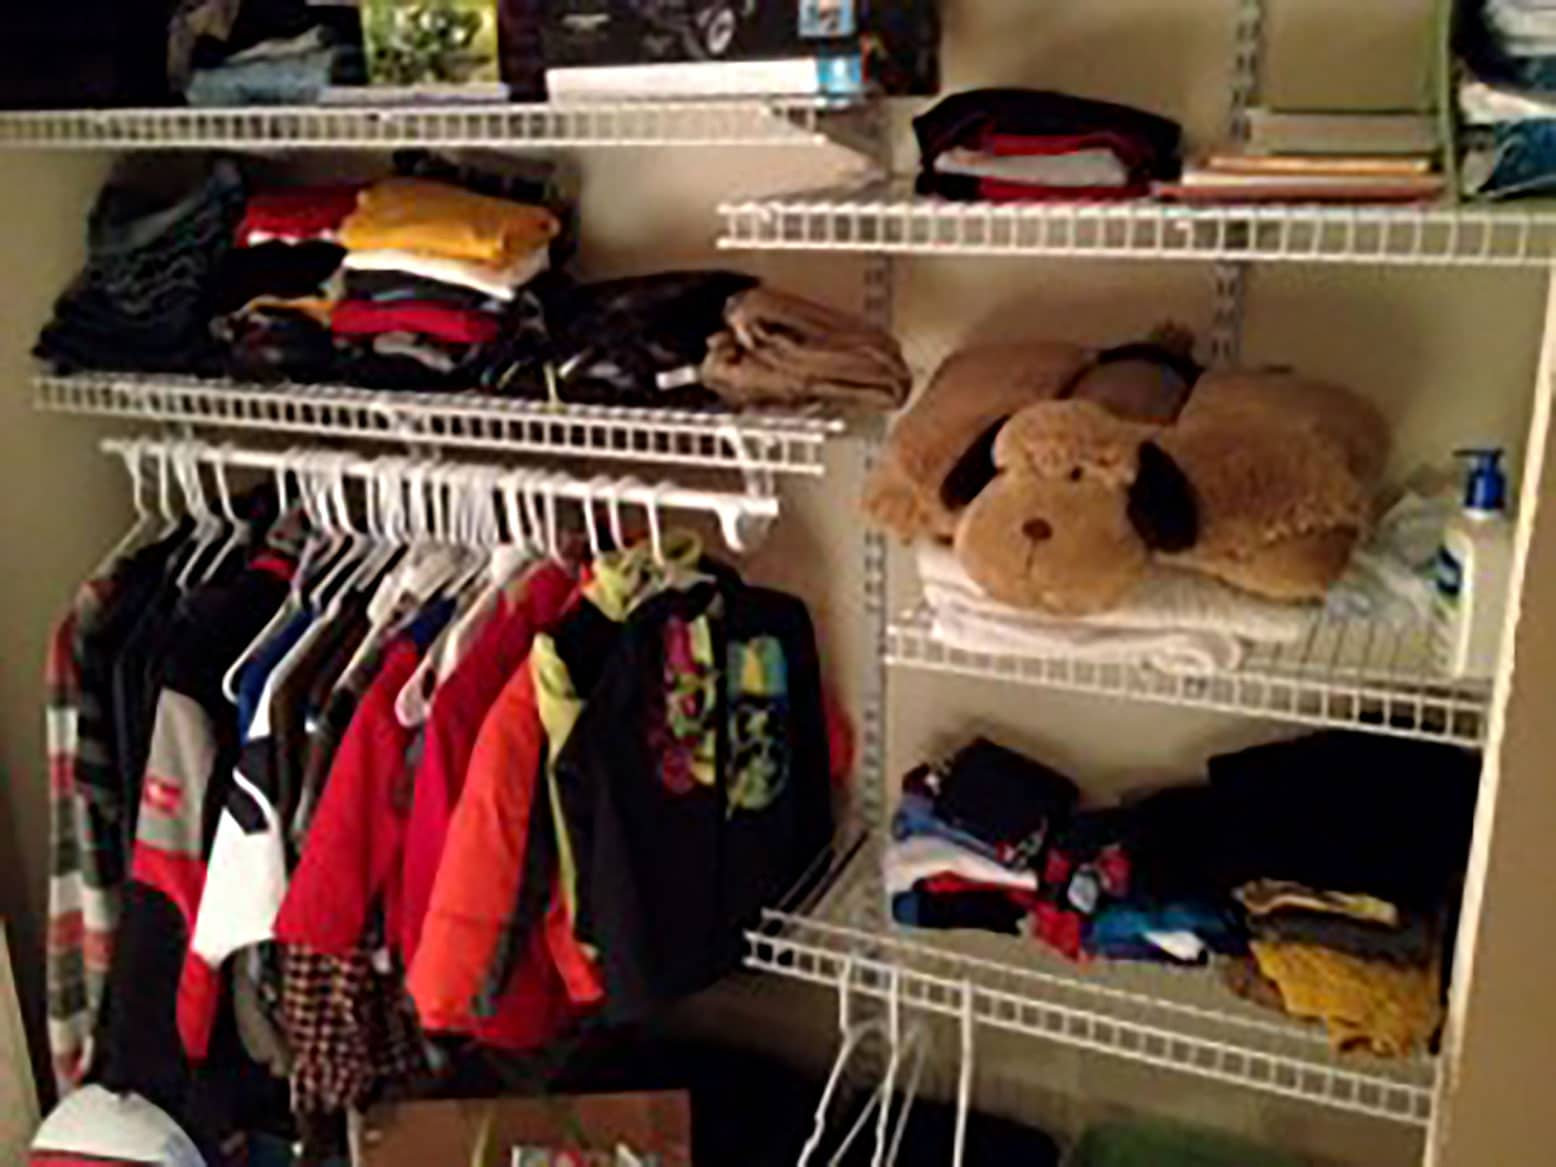 Our boys' closet, filled with clothing from the Wearhouse.